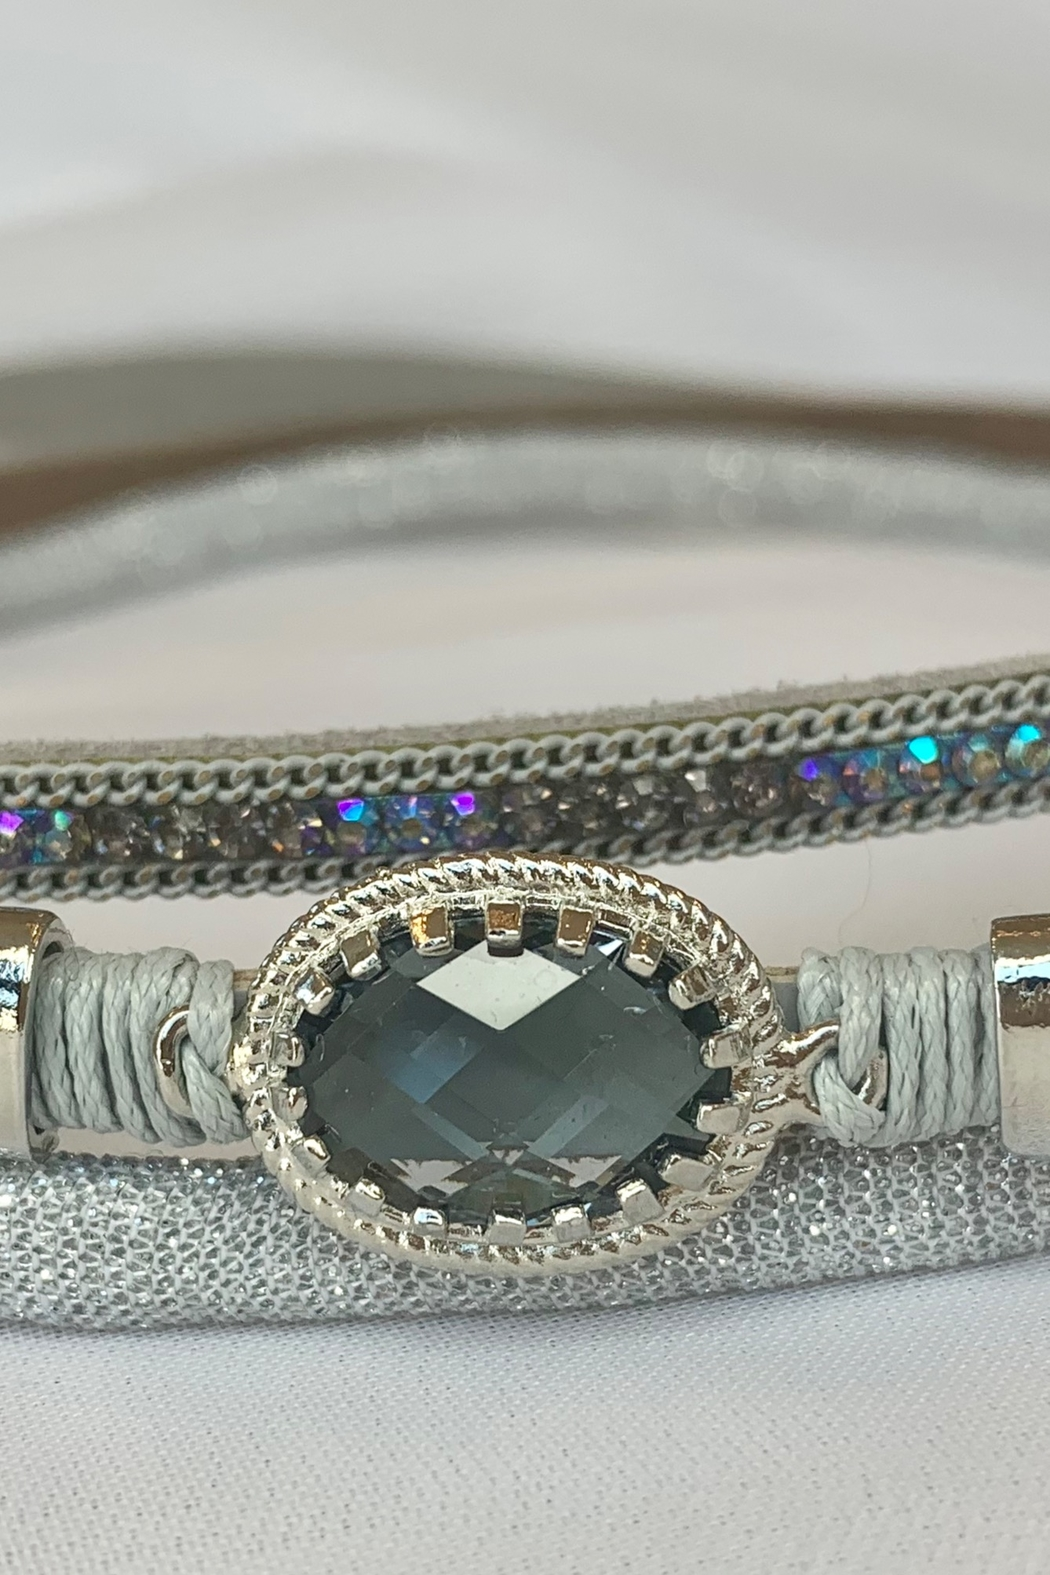 deannas Gray vegan leather choker with rhinestone accents - Main Image